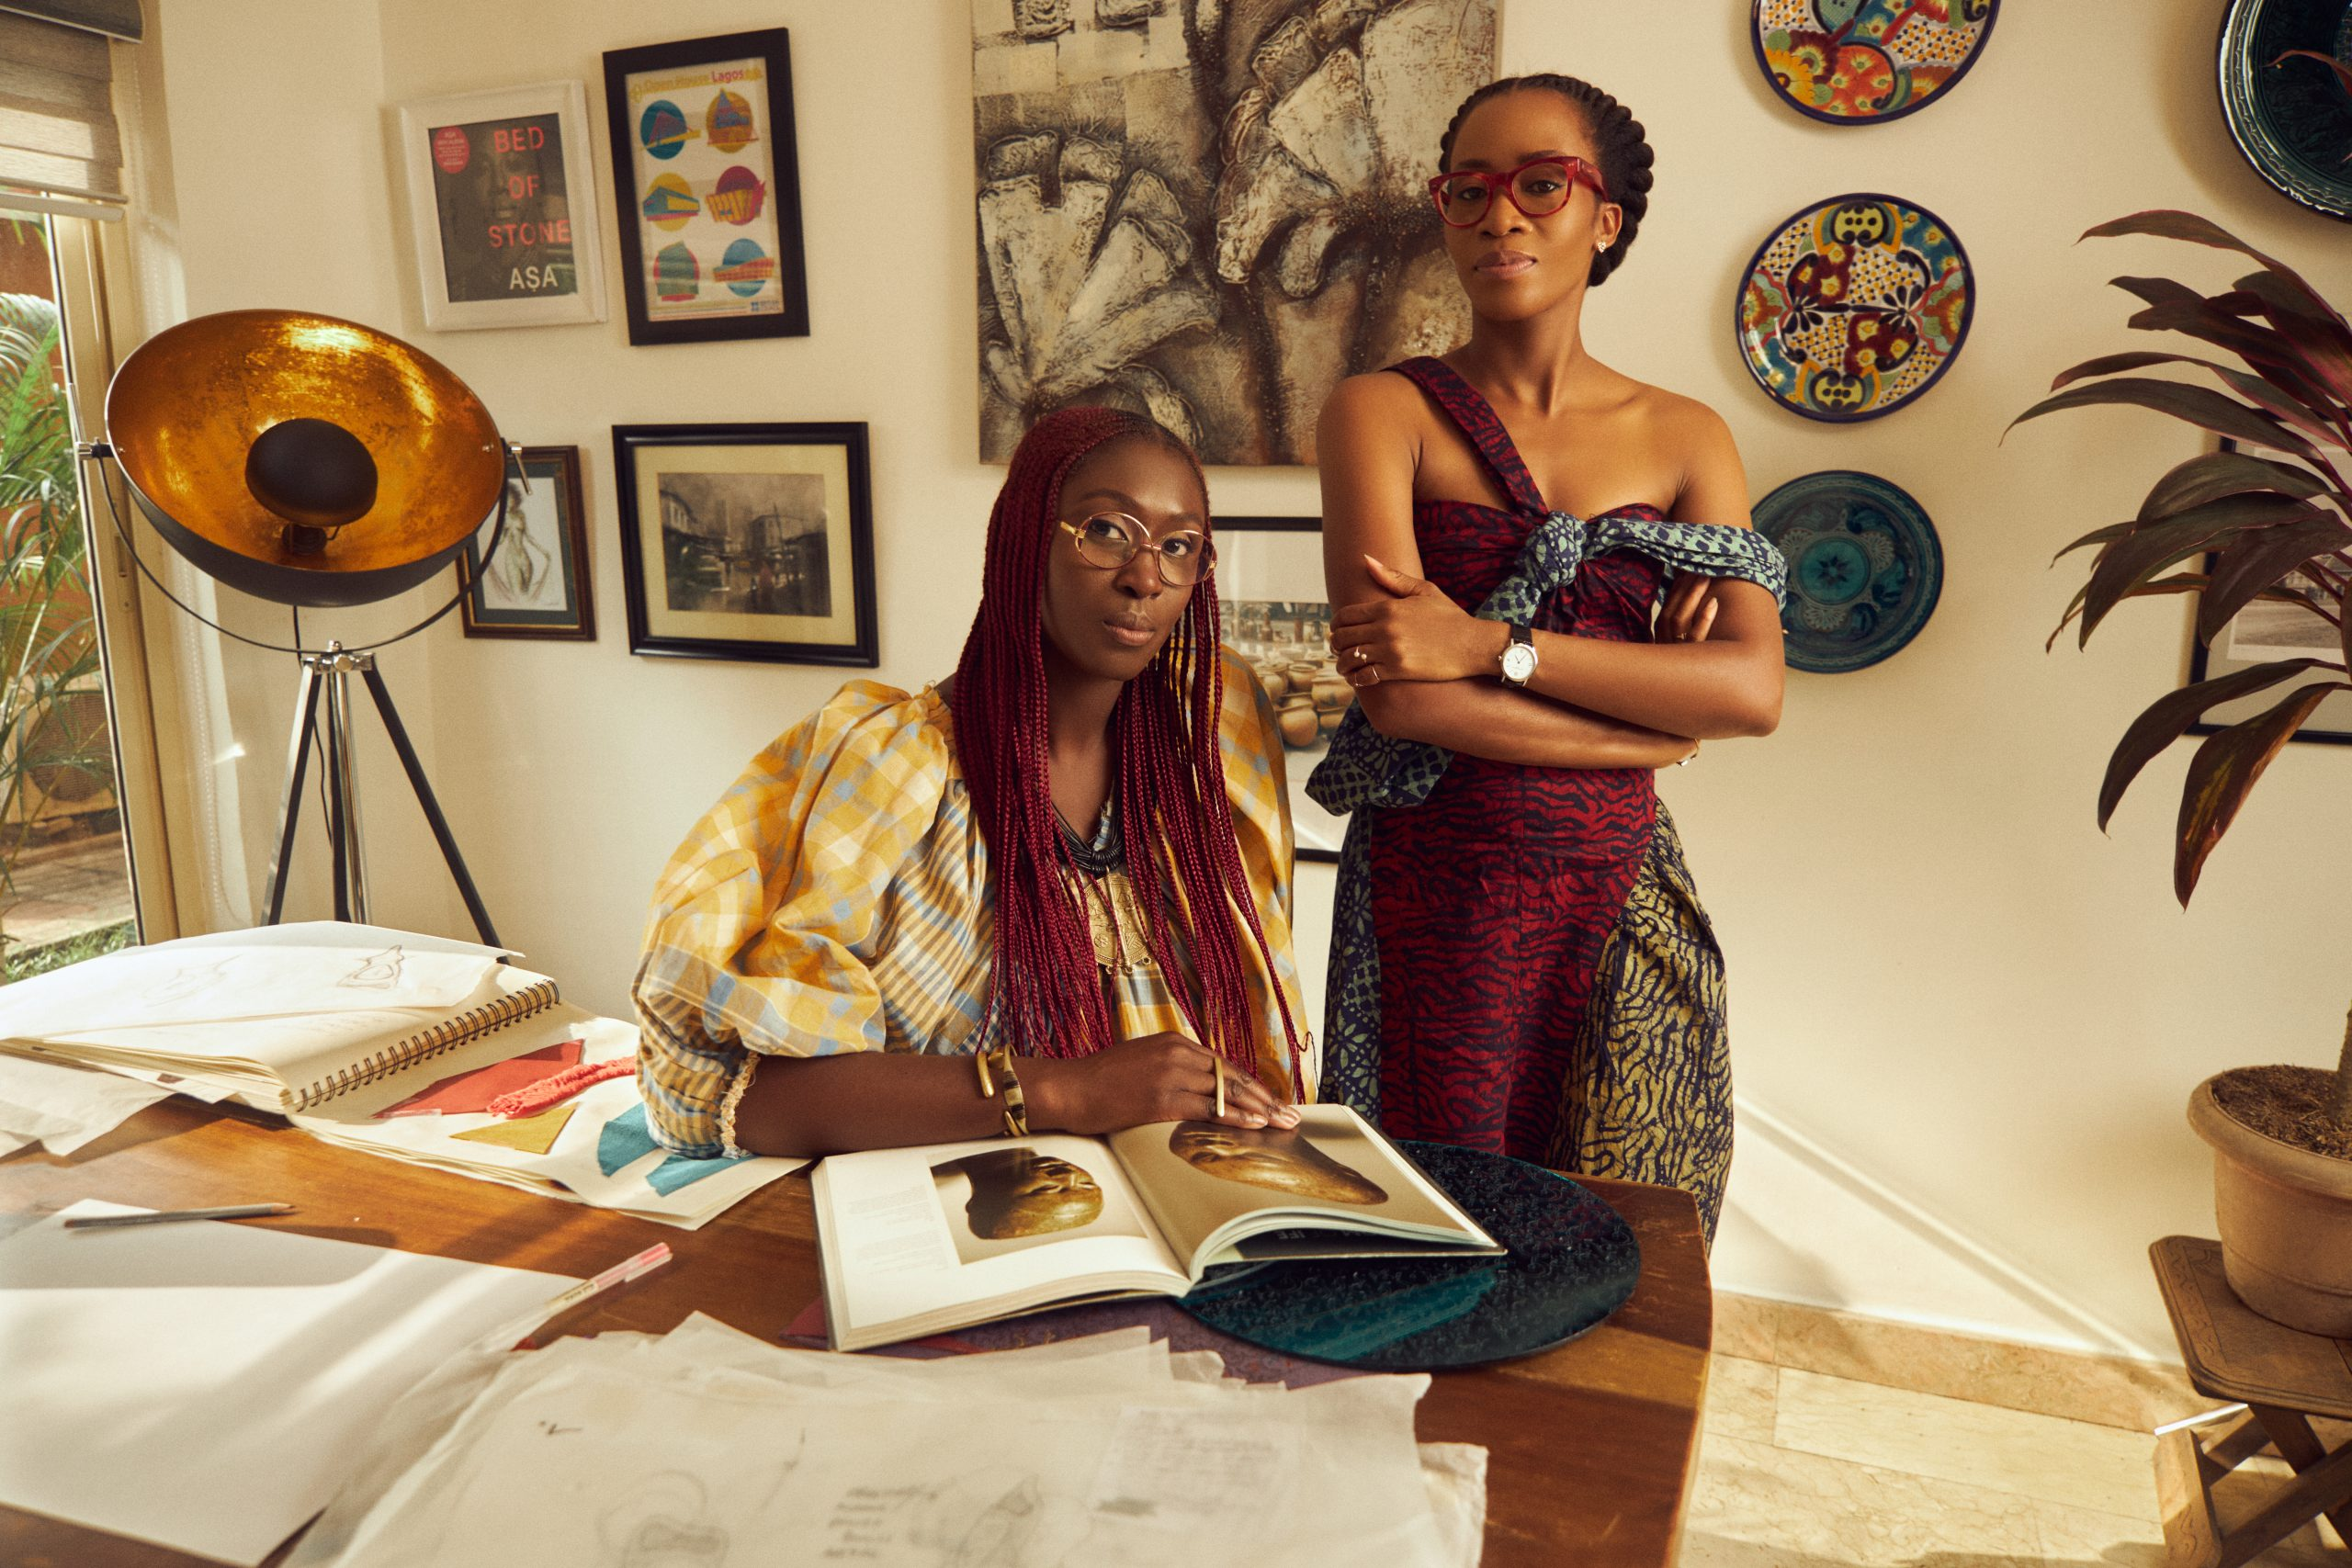 Chrissa Amuah and Tosin Oshinowo at Design Miami/ photo by Spark Creative.​